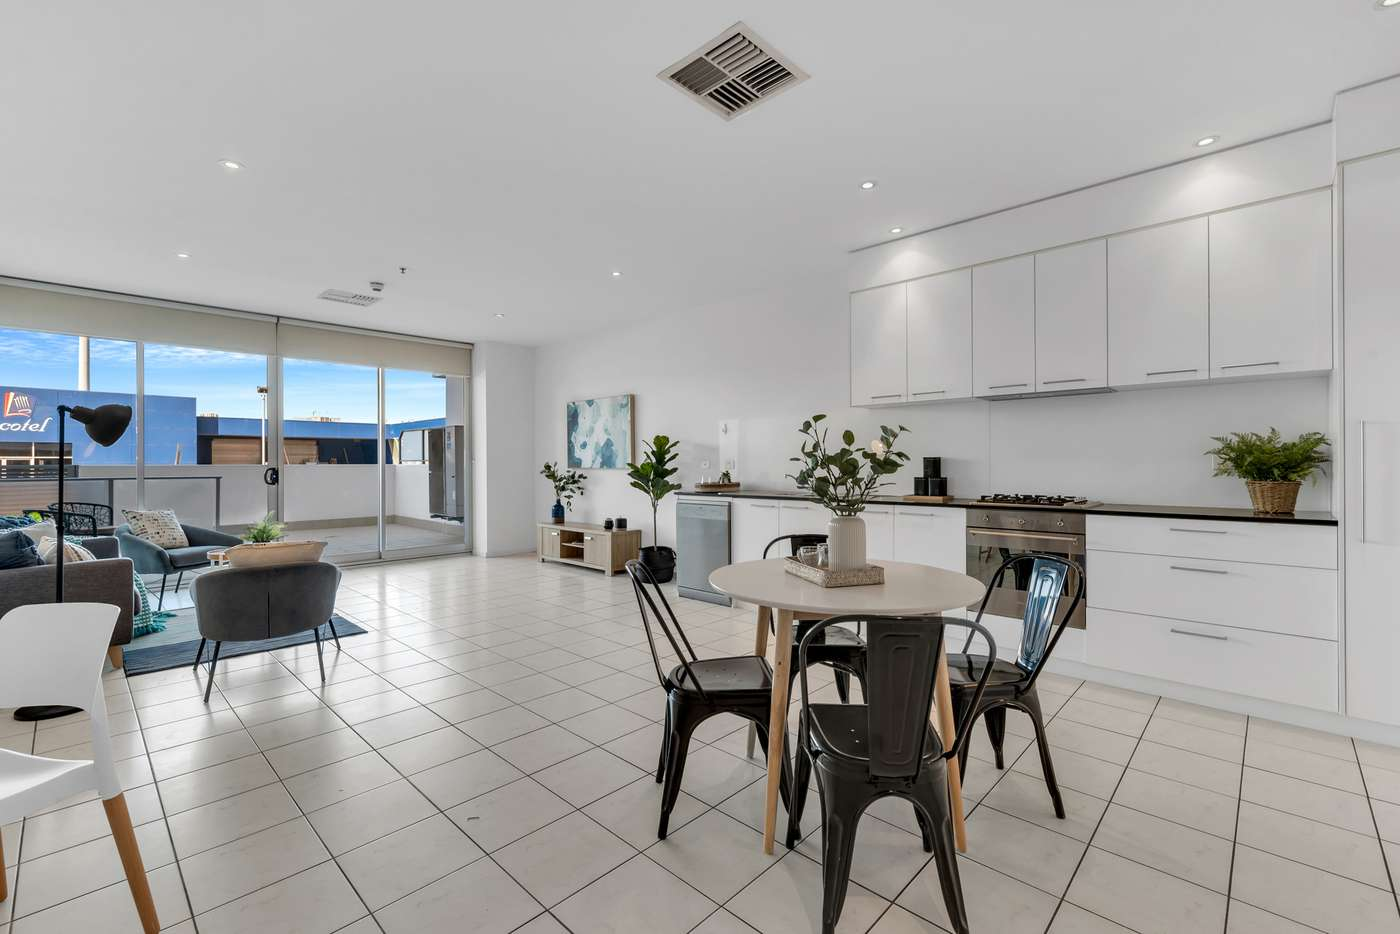 Main view of Homely apartment listing, 3/100 Rose Terrace, Wayville SA 5034